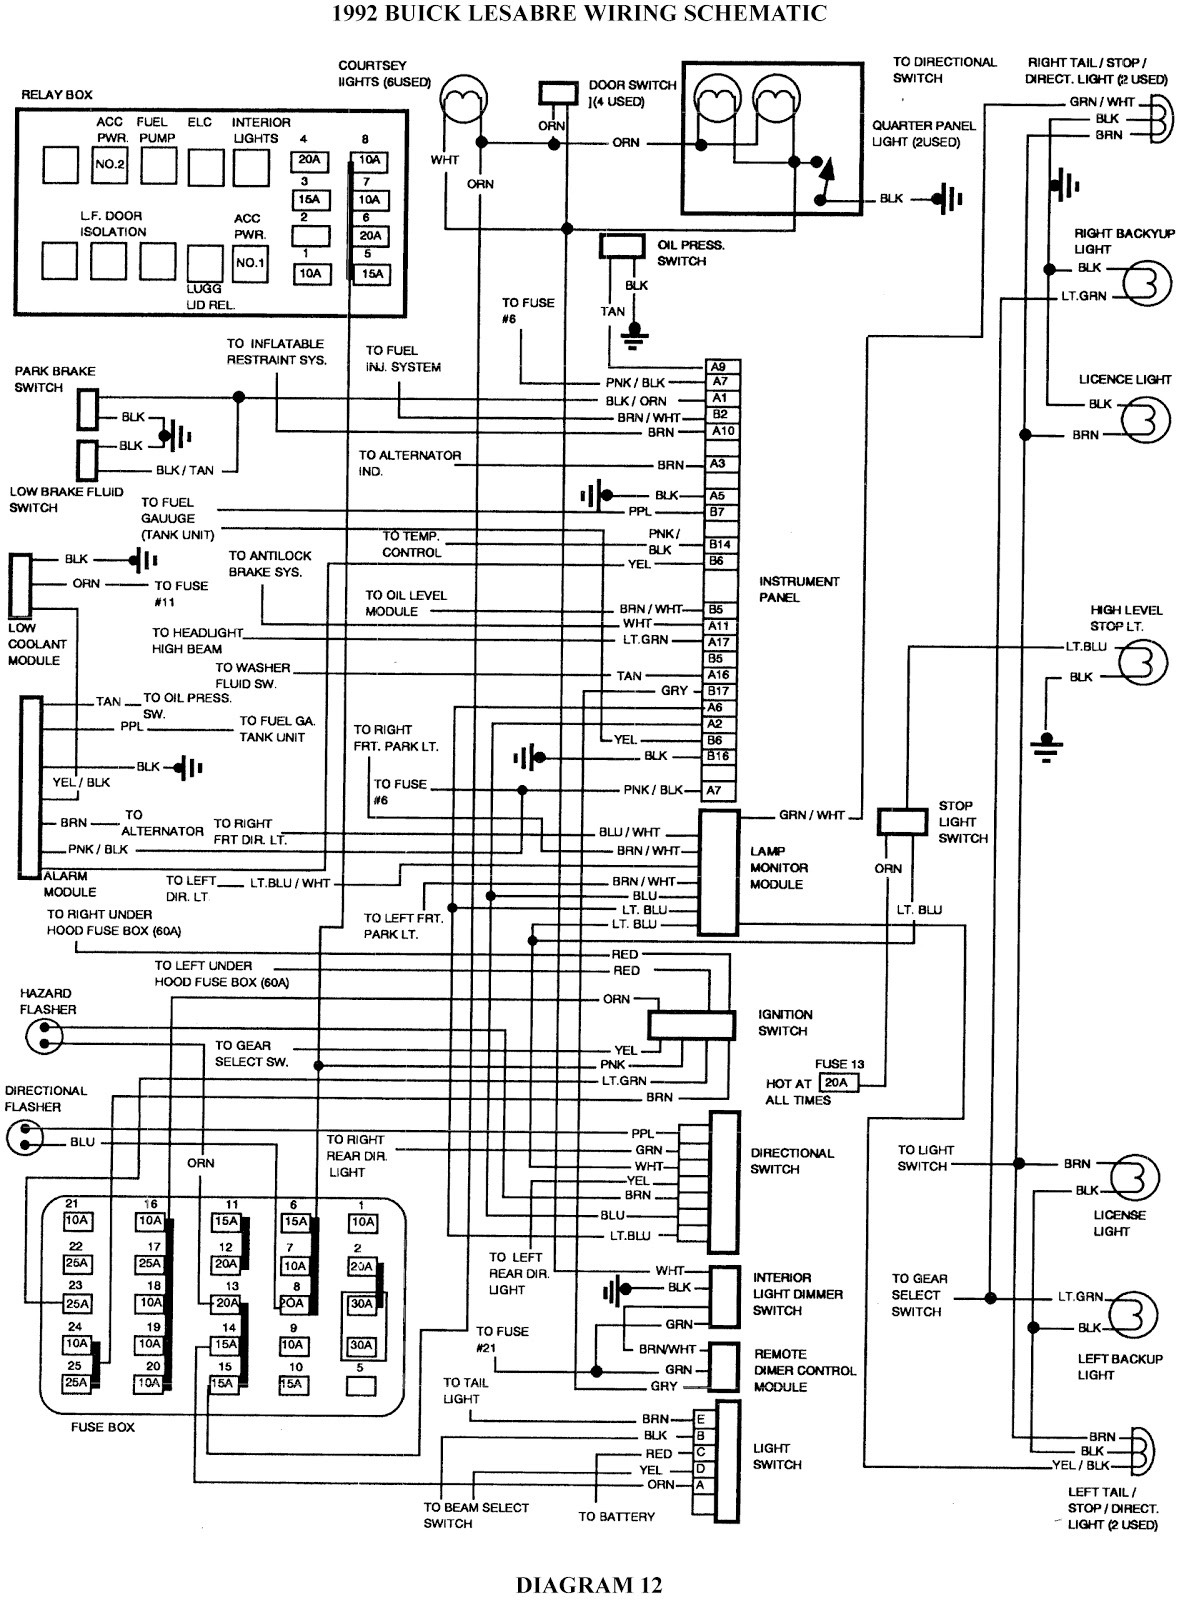 10250h5200 wiring diagram